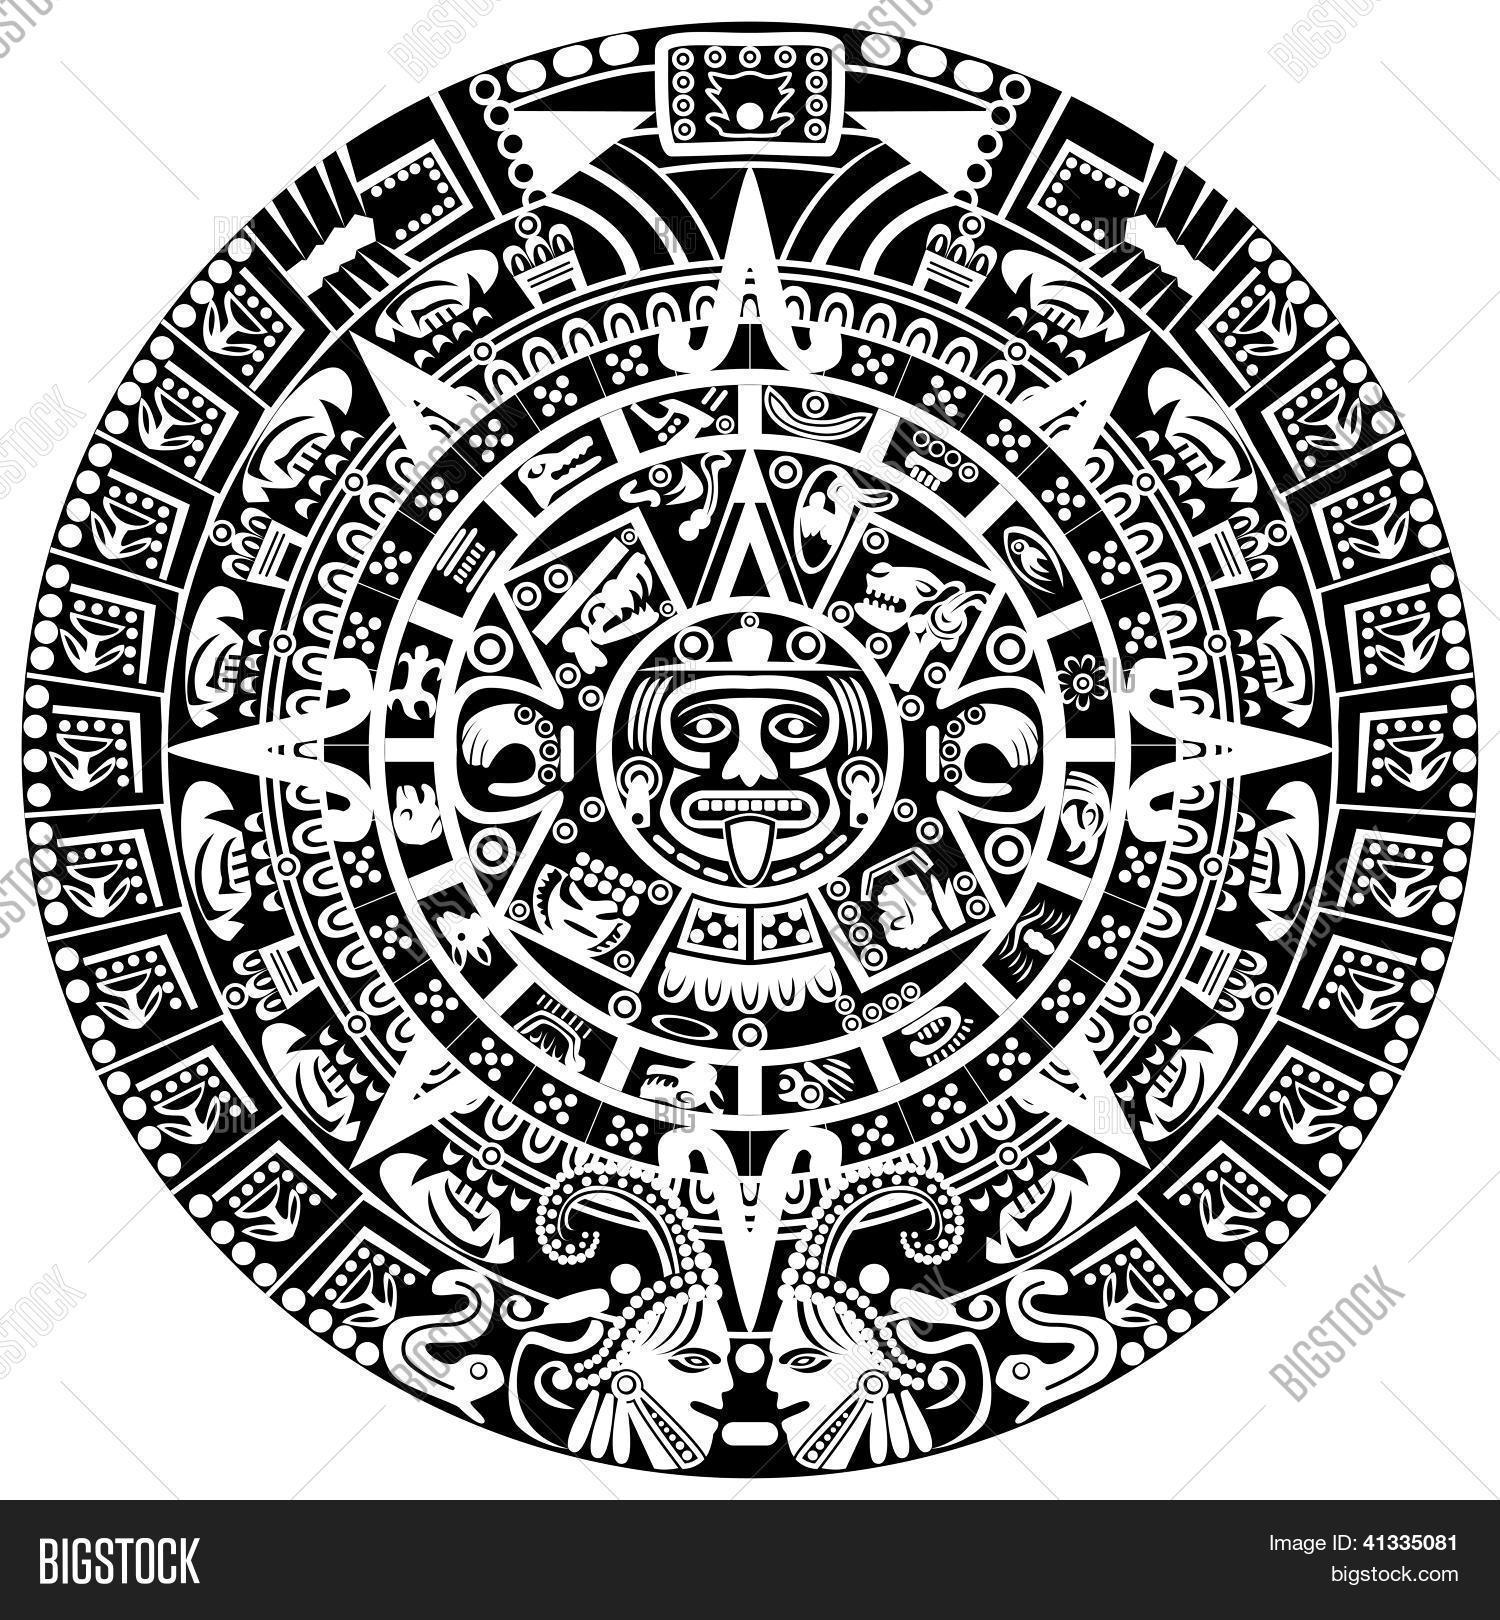 Calendario Maya Vector.Mayan Calendar Vector Photo Free Trial Bigstock